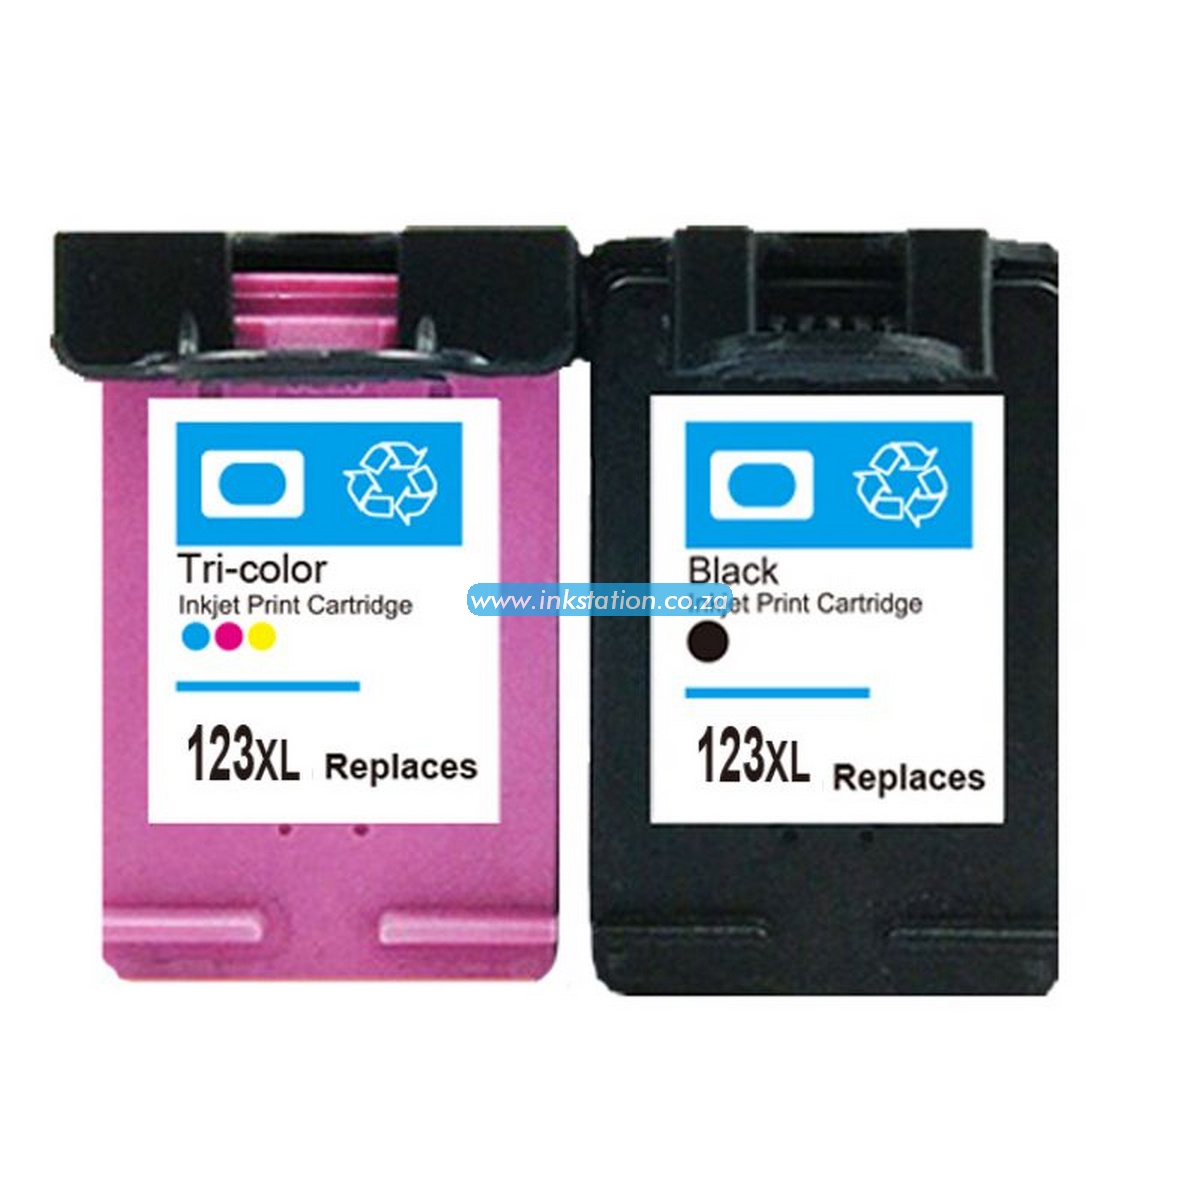 Hp Deskjet 3639 Cartridge